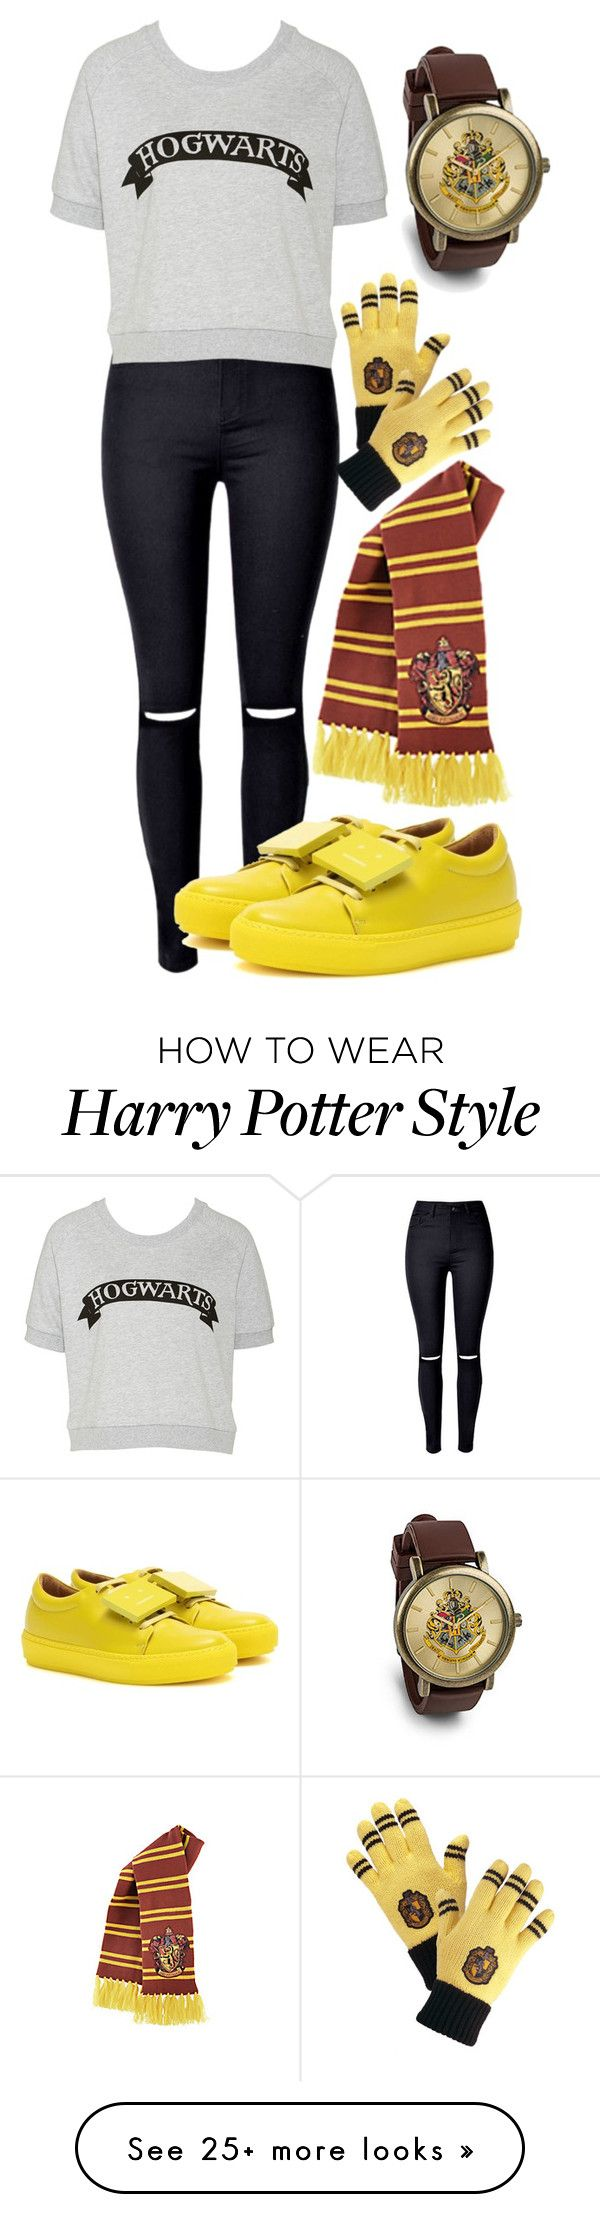 """Harry Potter geek girl"" by pauliendemil on Polyvore featuring Acne Studios"